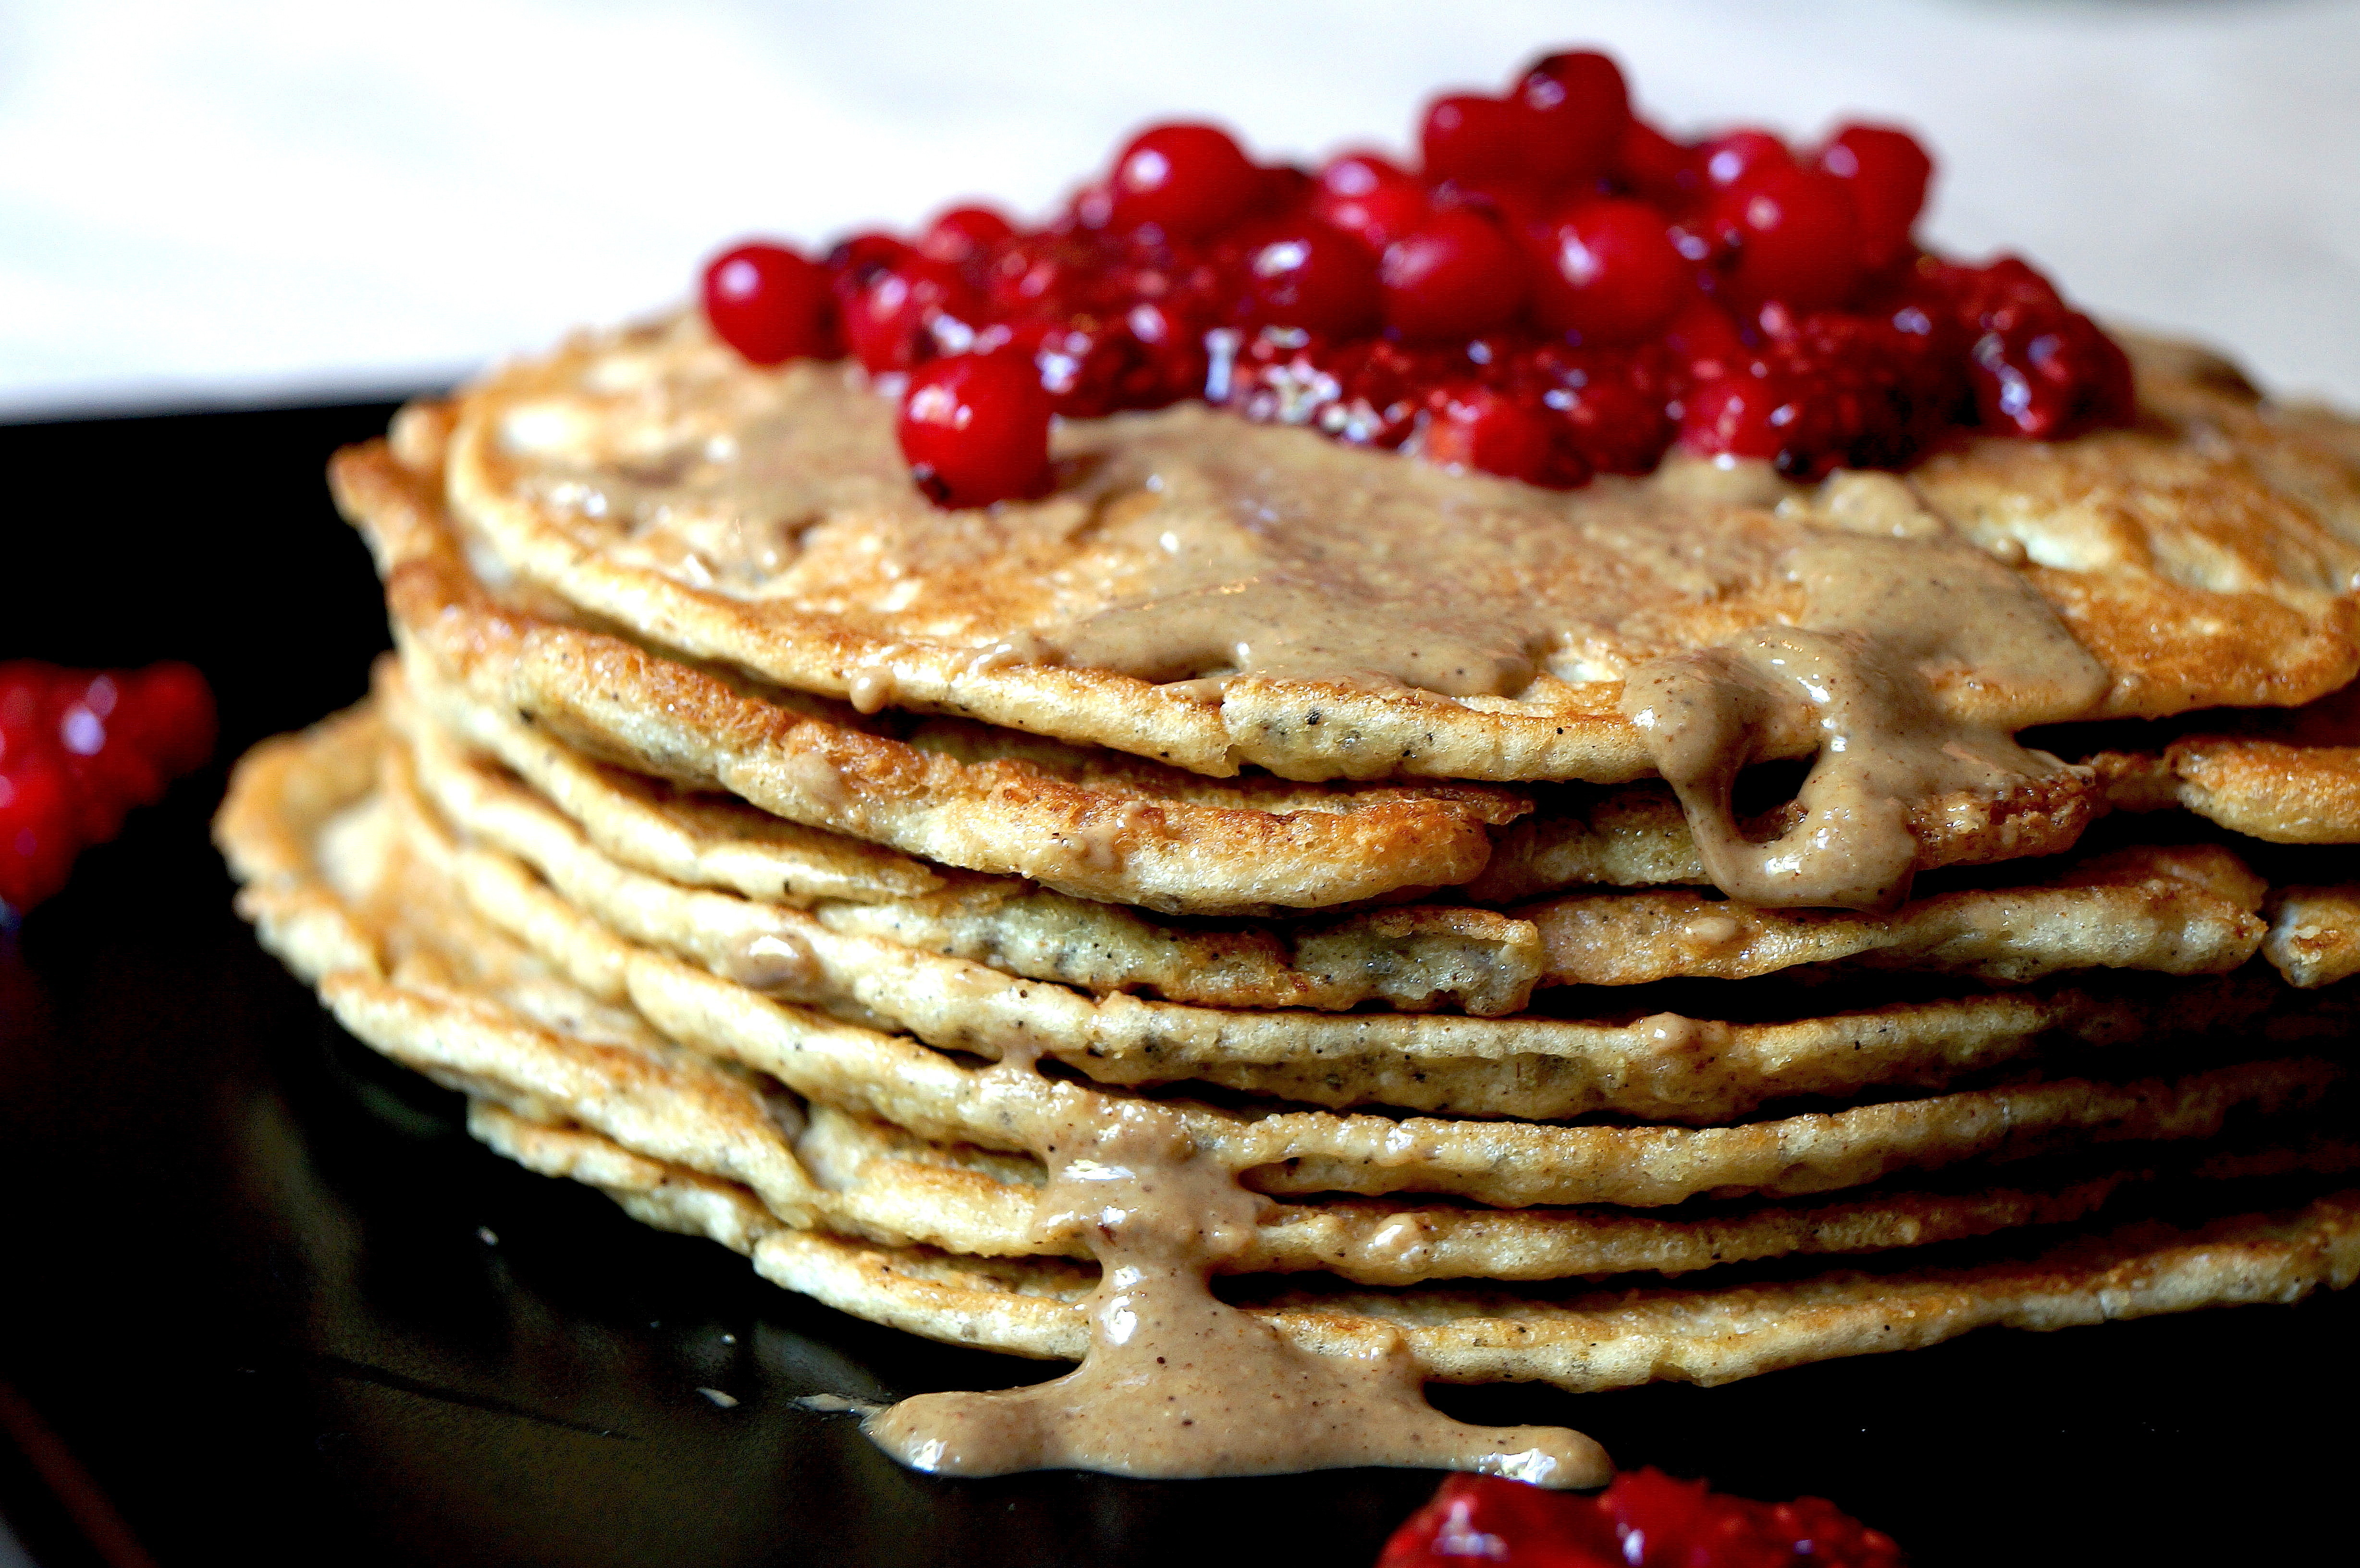 Quinoa and almond pancakes with cardamom